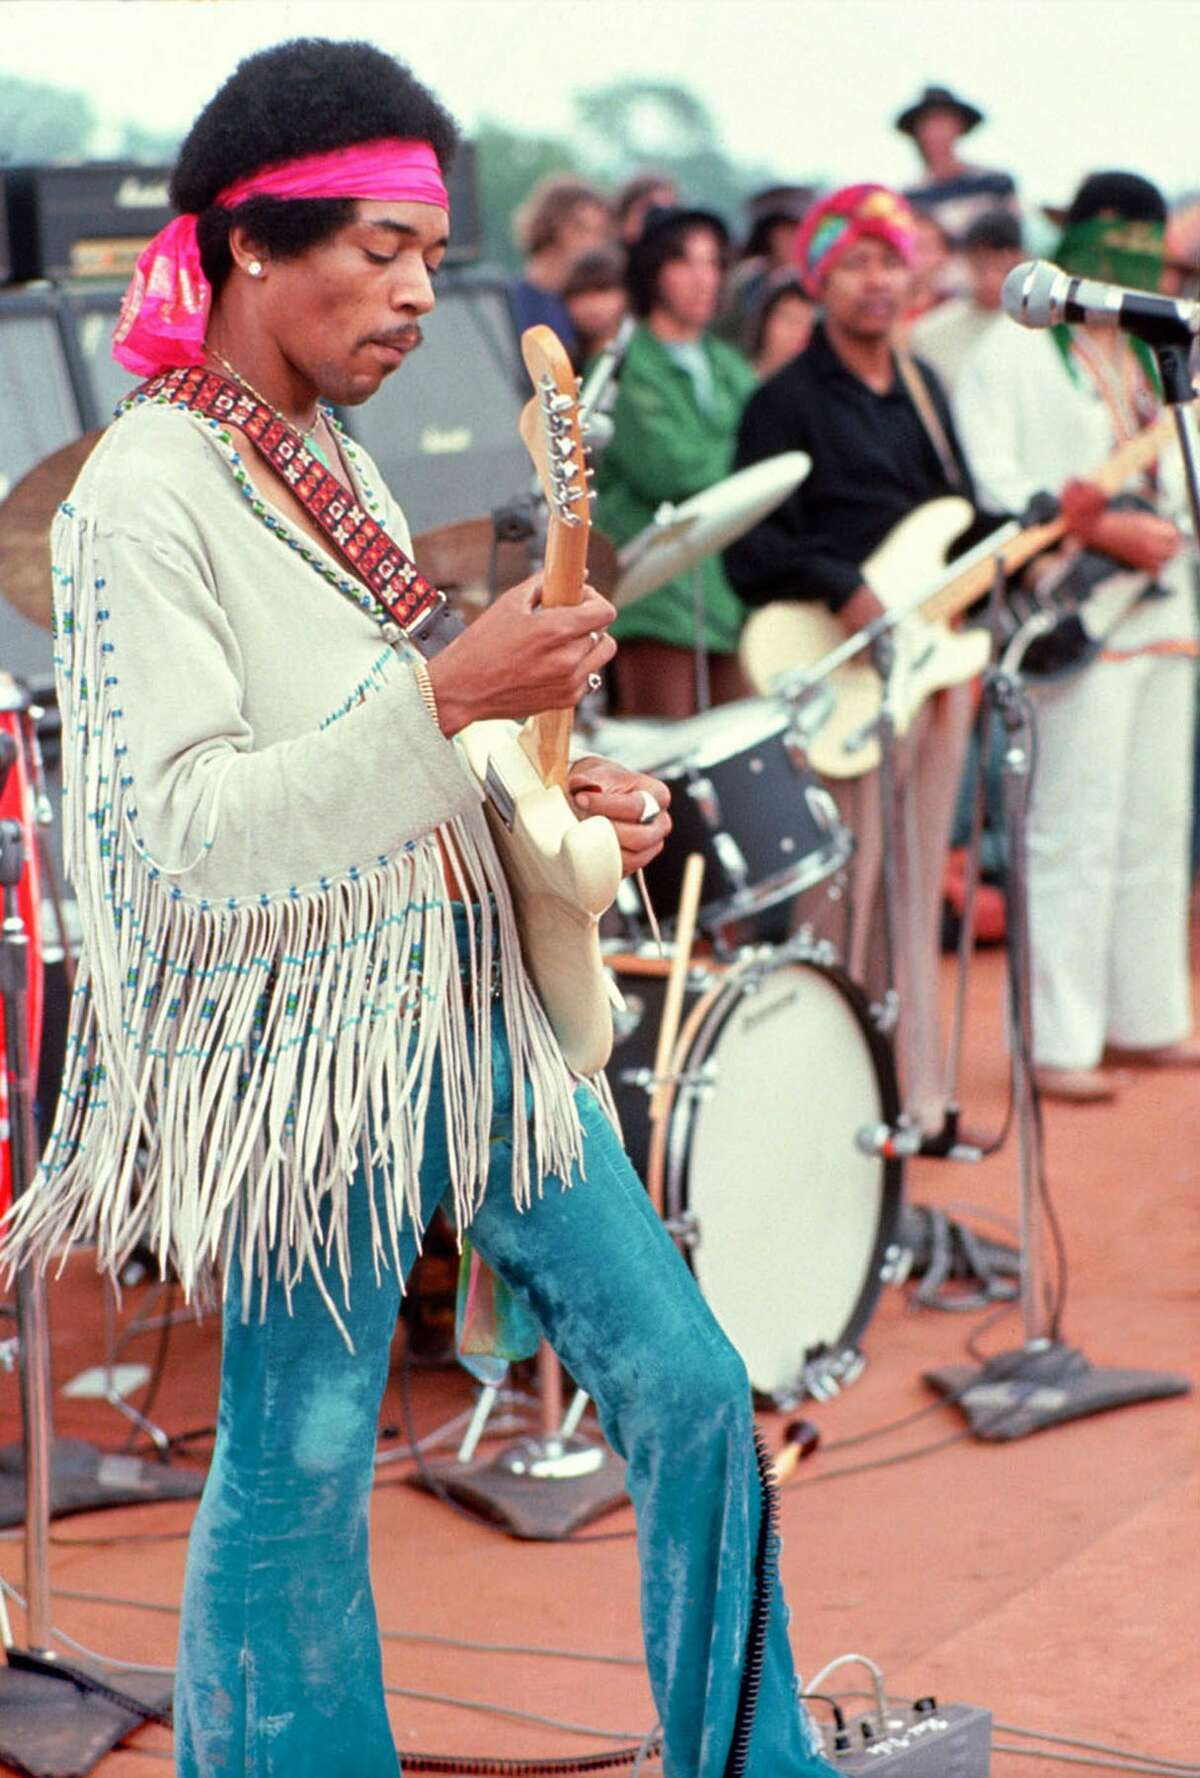 (FILES) This handout file photo by Henry Diltz shows musician Jimi Hendrix playing live at the original Woodstock festival in Bethel, New York on August 15, 1969. Hendrix's relatively short stage career with his band The Experience lasted only four years, but his musical legacy was huge, on September 18, 2010 people the world over are preparing to mark the fortieth anniversary of the death of the guitar hero who died on September 18, 2010 in london hotel room after choking on his own vomit after a lethal cocktail of Red wine and sleeping pills. AFP PHOTO/HENRY DILTZ/MORRISON HOTEL GALLERY/NEWSCOM/HO ++RESTRICTED TO EDITORIAL USE++ (Photo credit should read HENRY DILTZ/AFP/Getty Images)